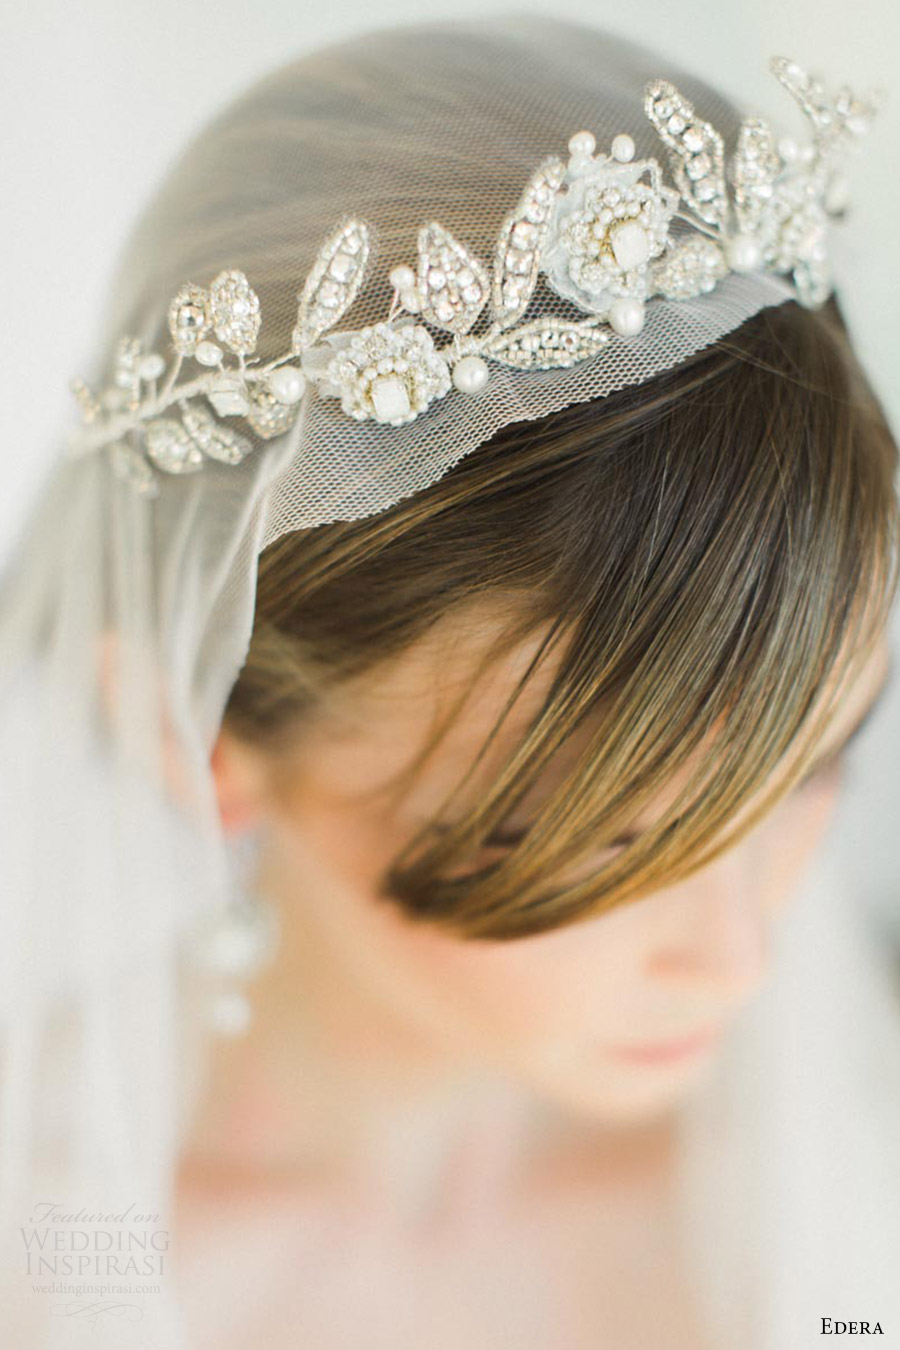 edera jewelry 2016 bridal accessories collection (aquarelle) tiara top down view hair